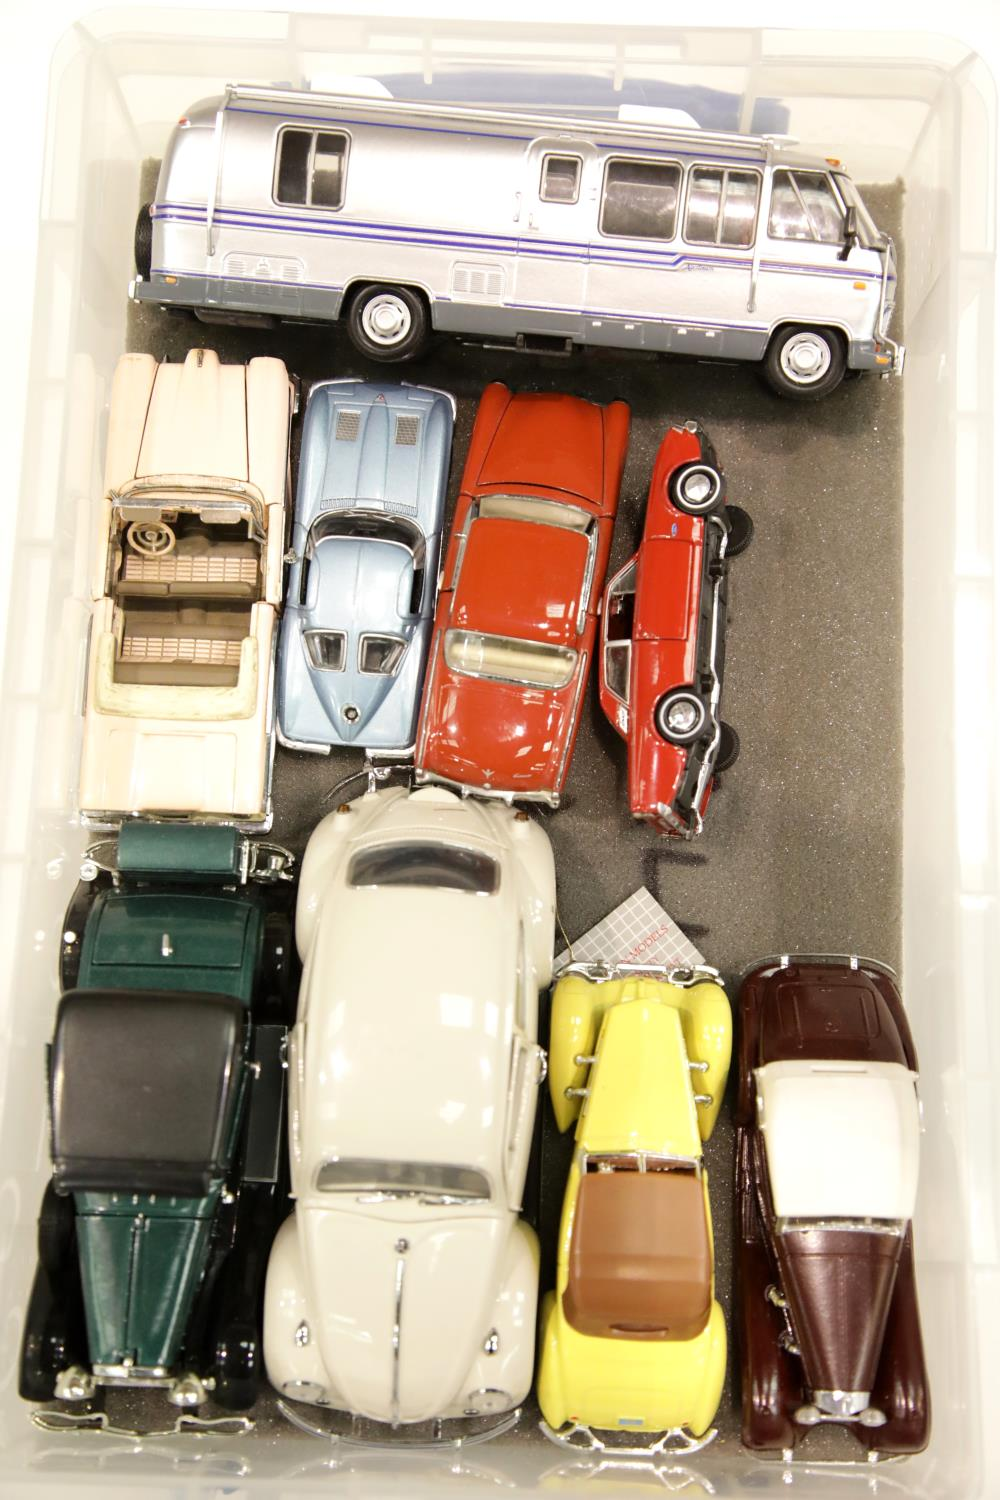 Lot 669 - Nine unboxed vehicles to include diecast, Matchbox, Franklin Mint, Solido etc including Airstream